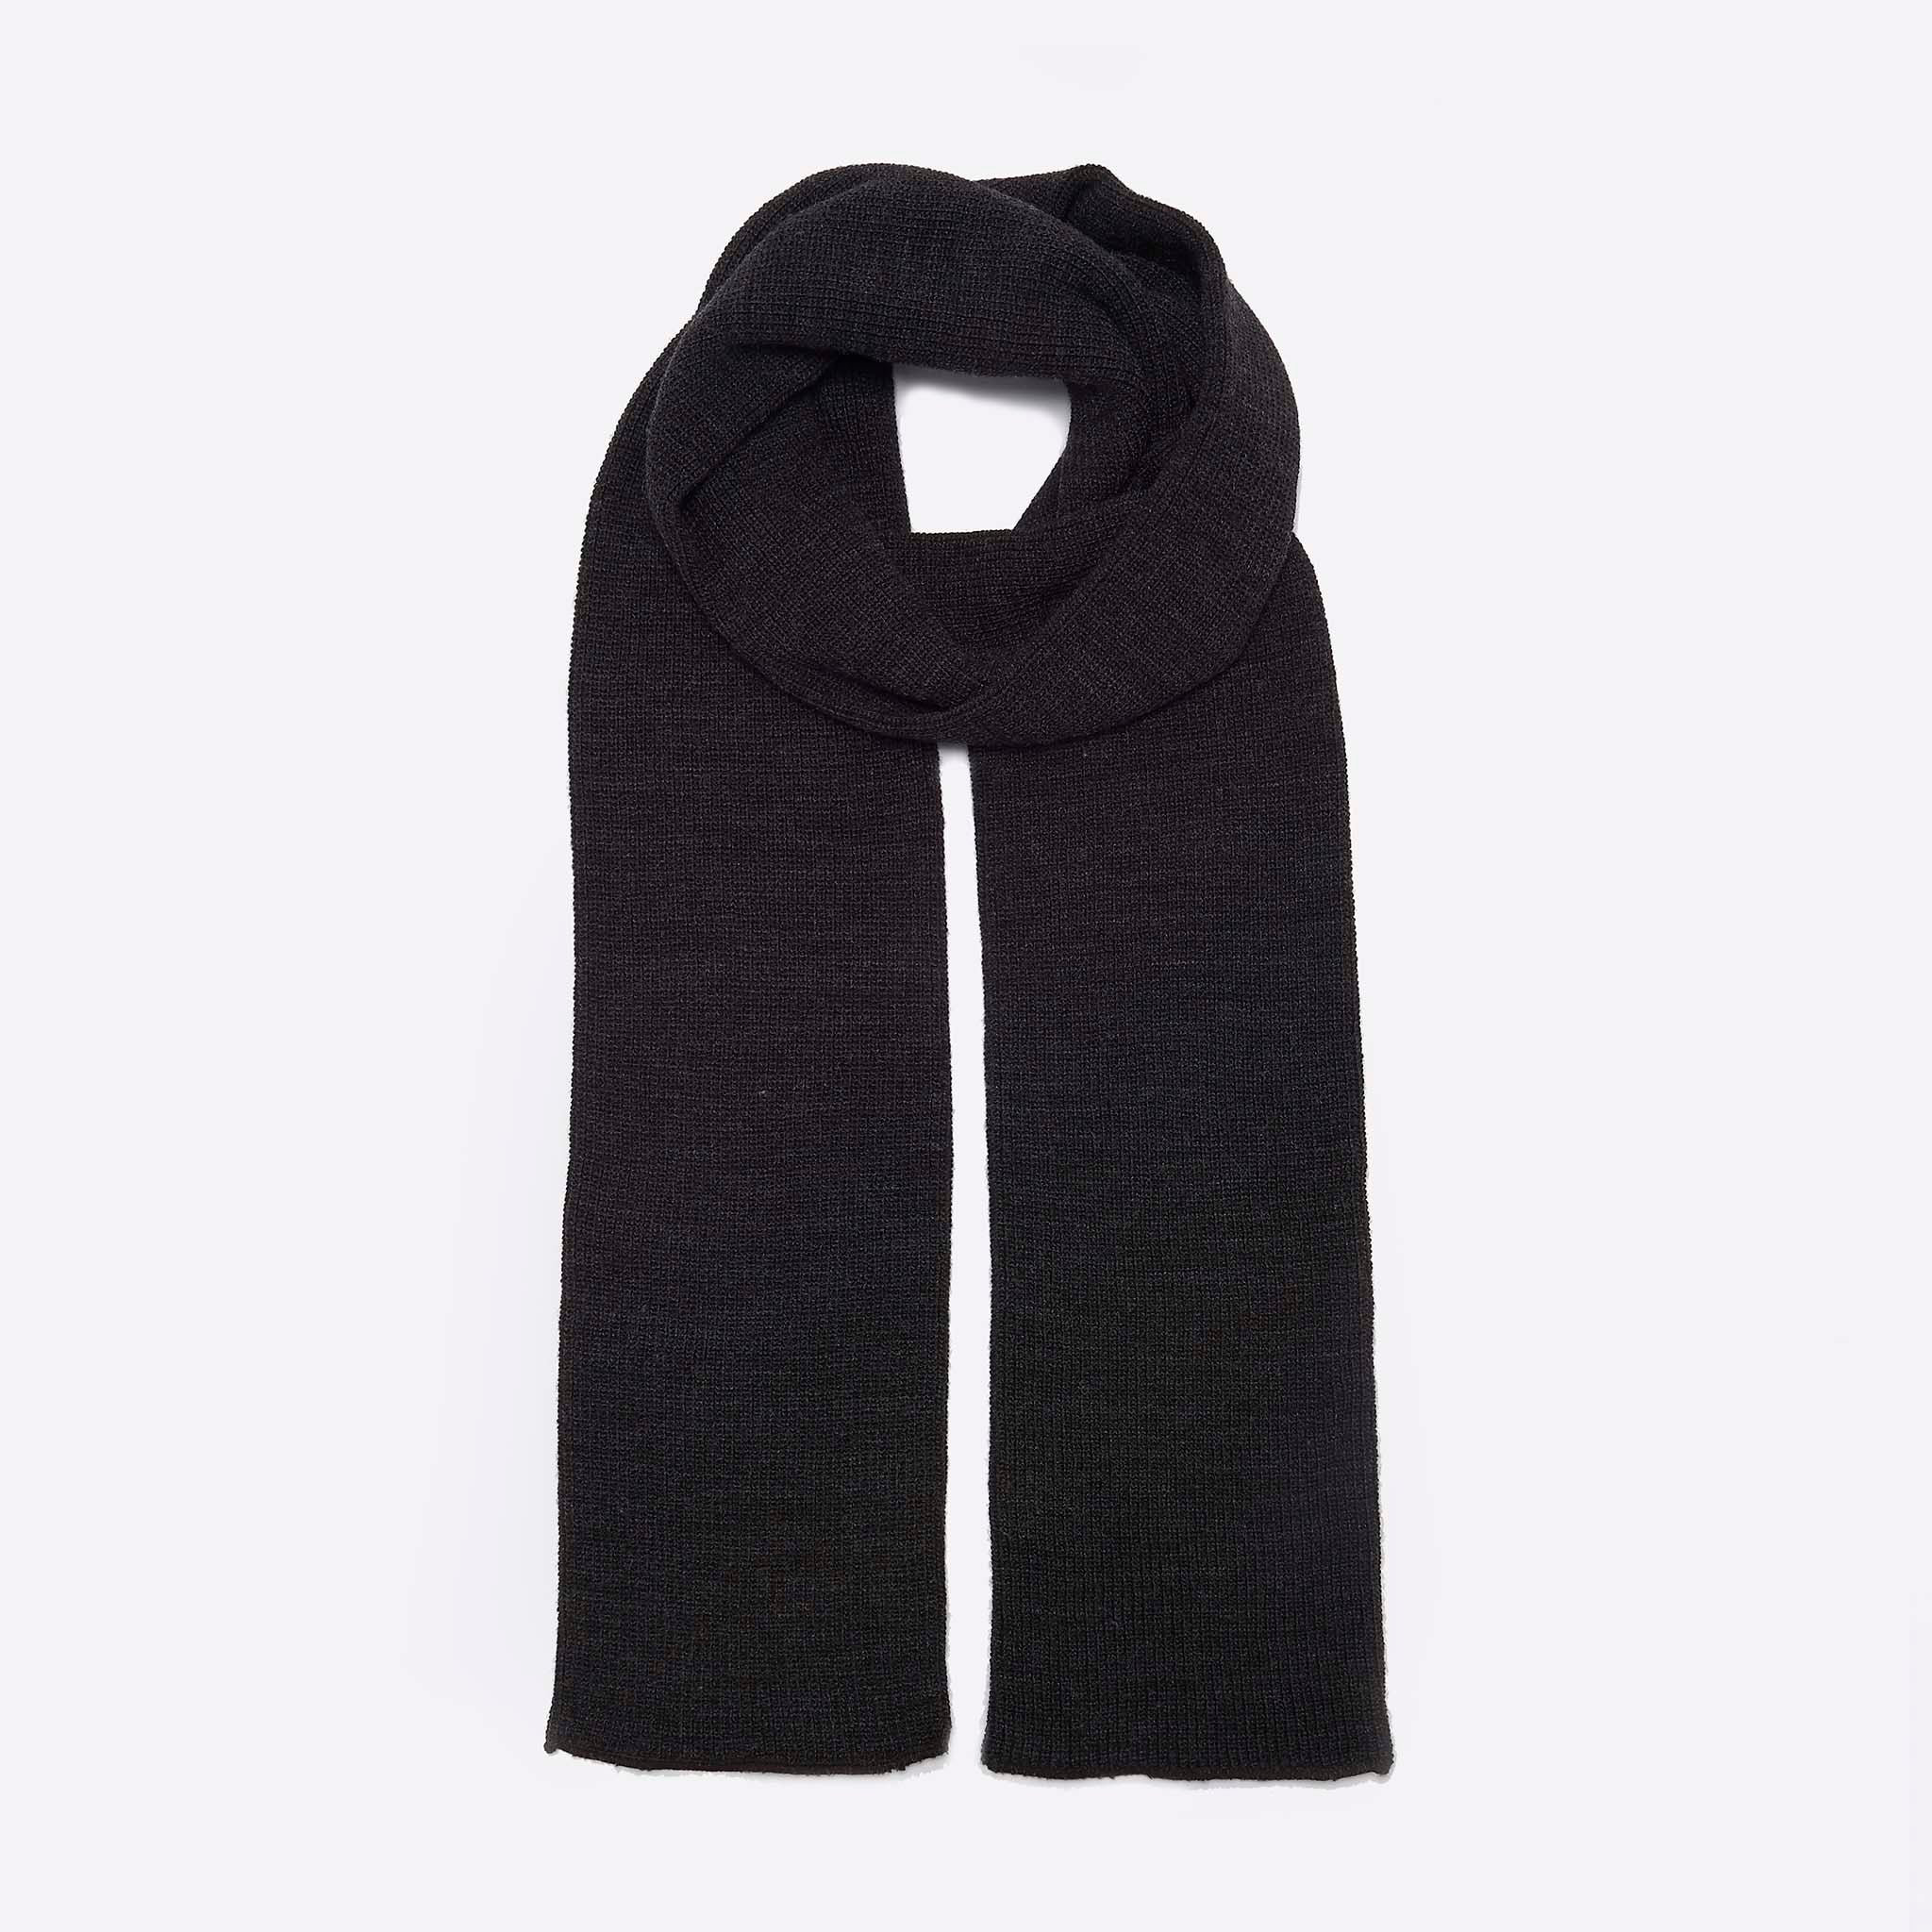 RoToTo Sock Scarf In Charcoal